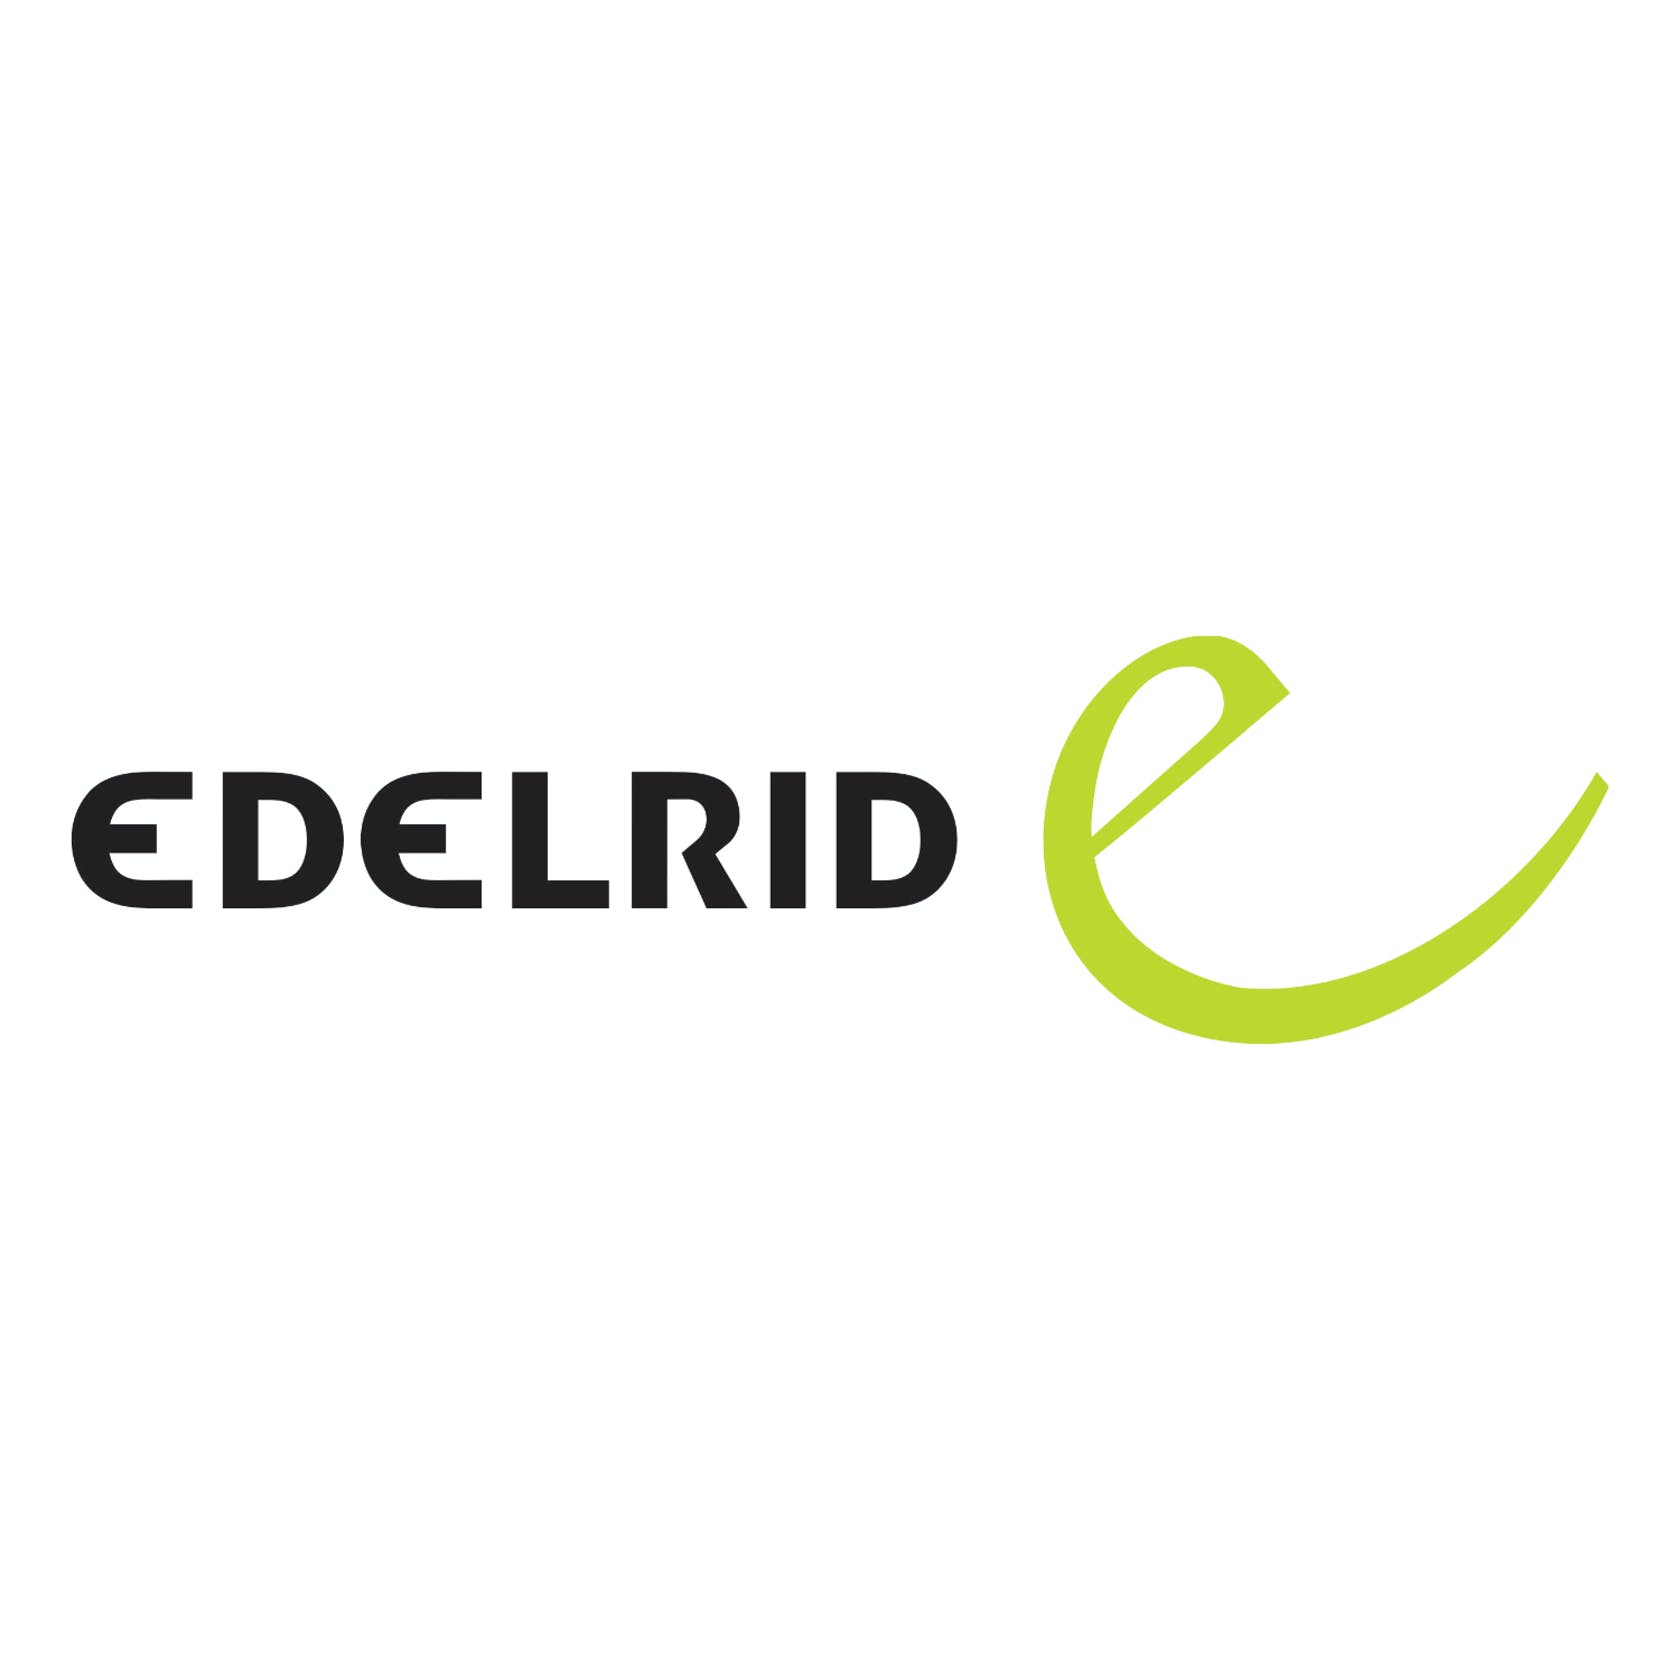 eledrid Onlineshop